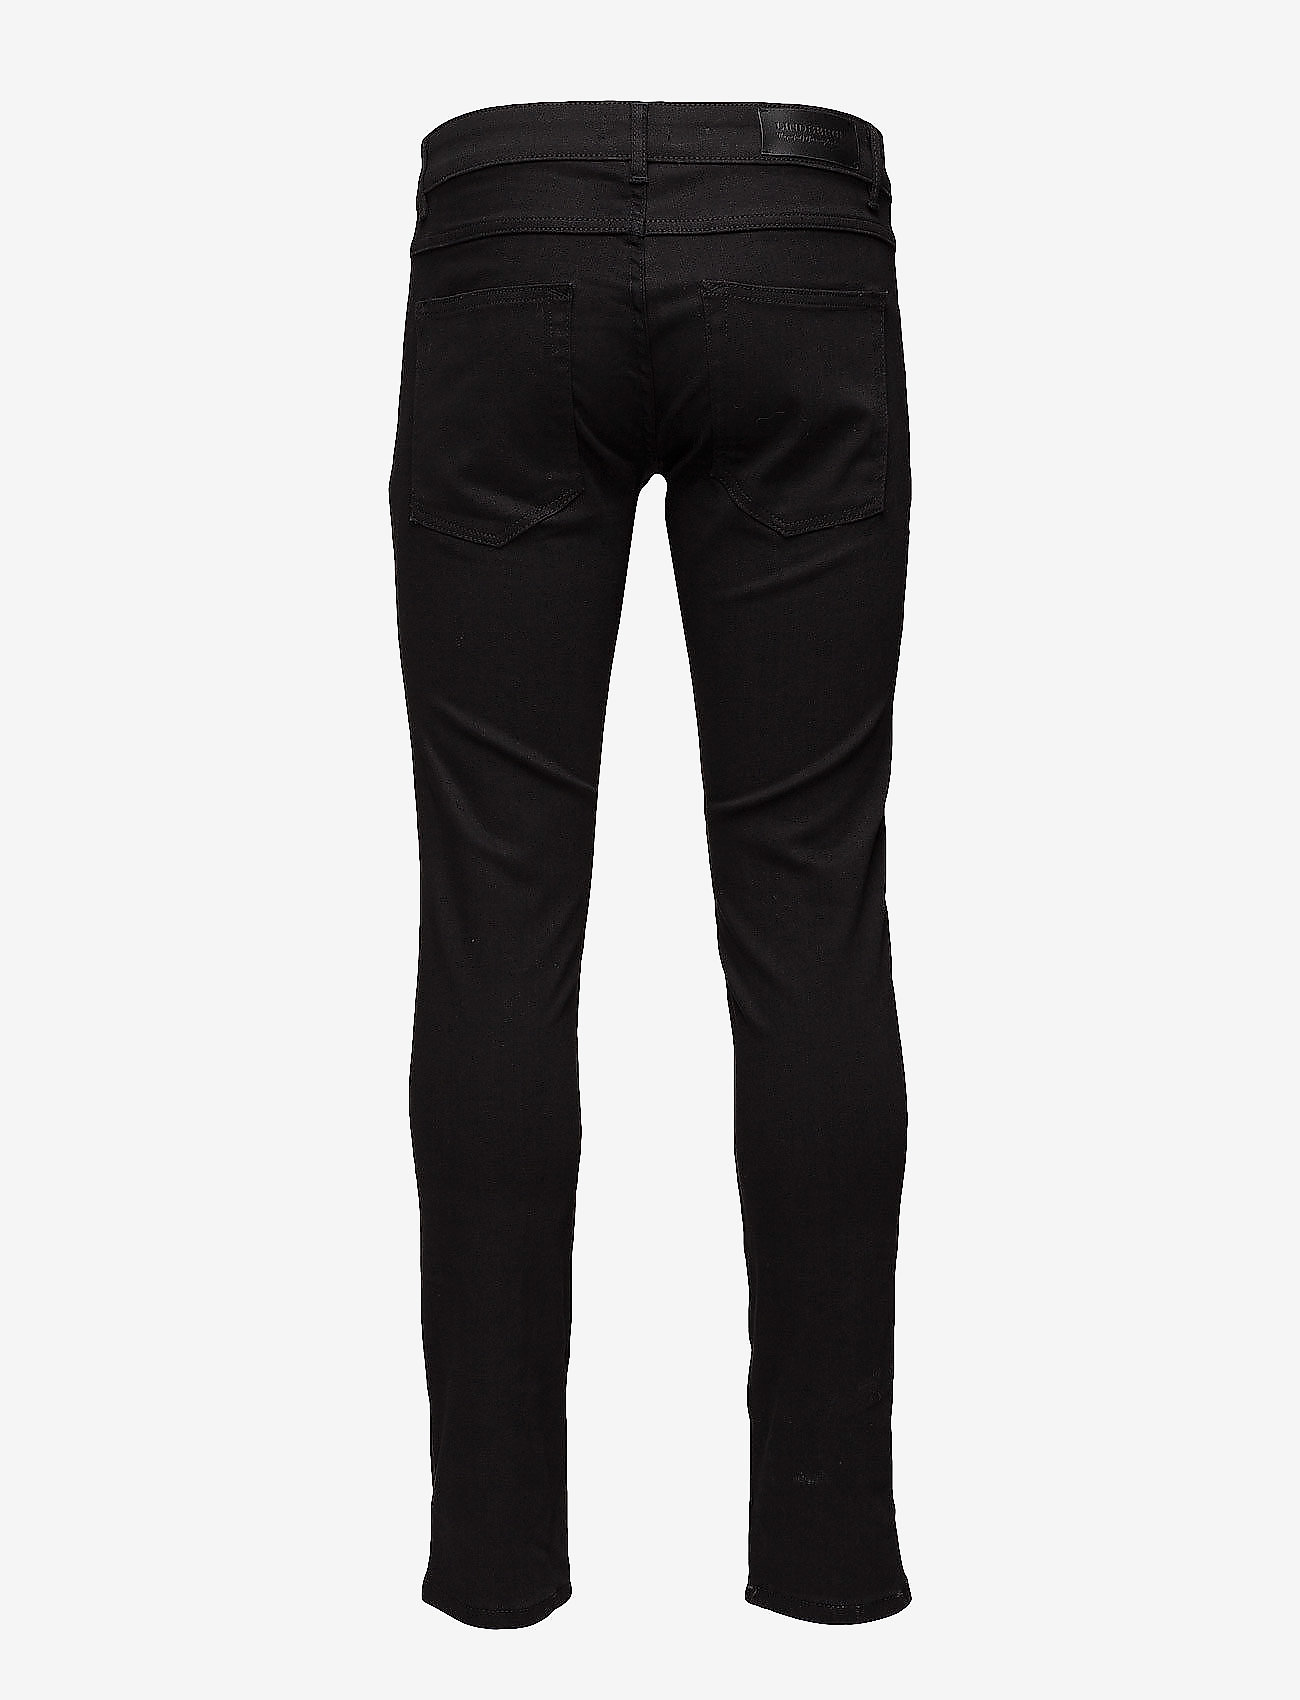 Lindbergh Tapered Fit Jeans Black Ink -